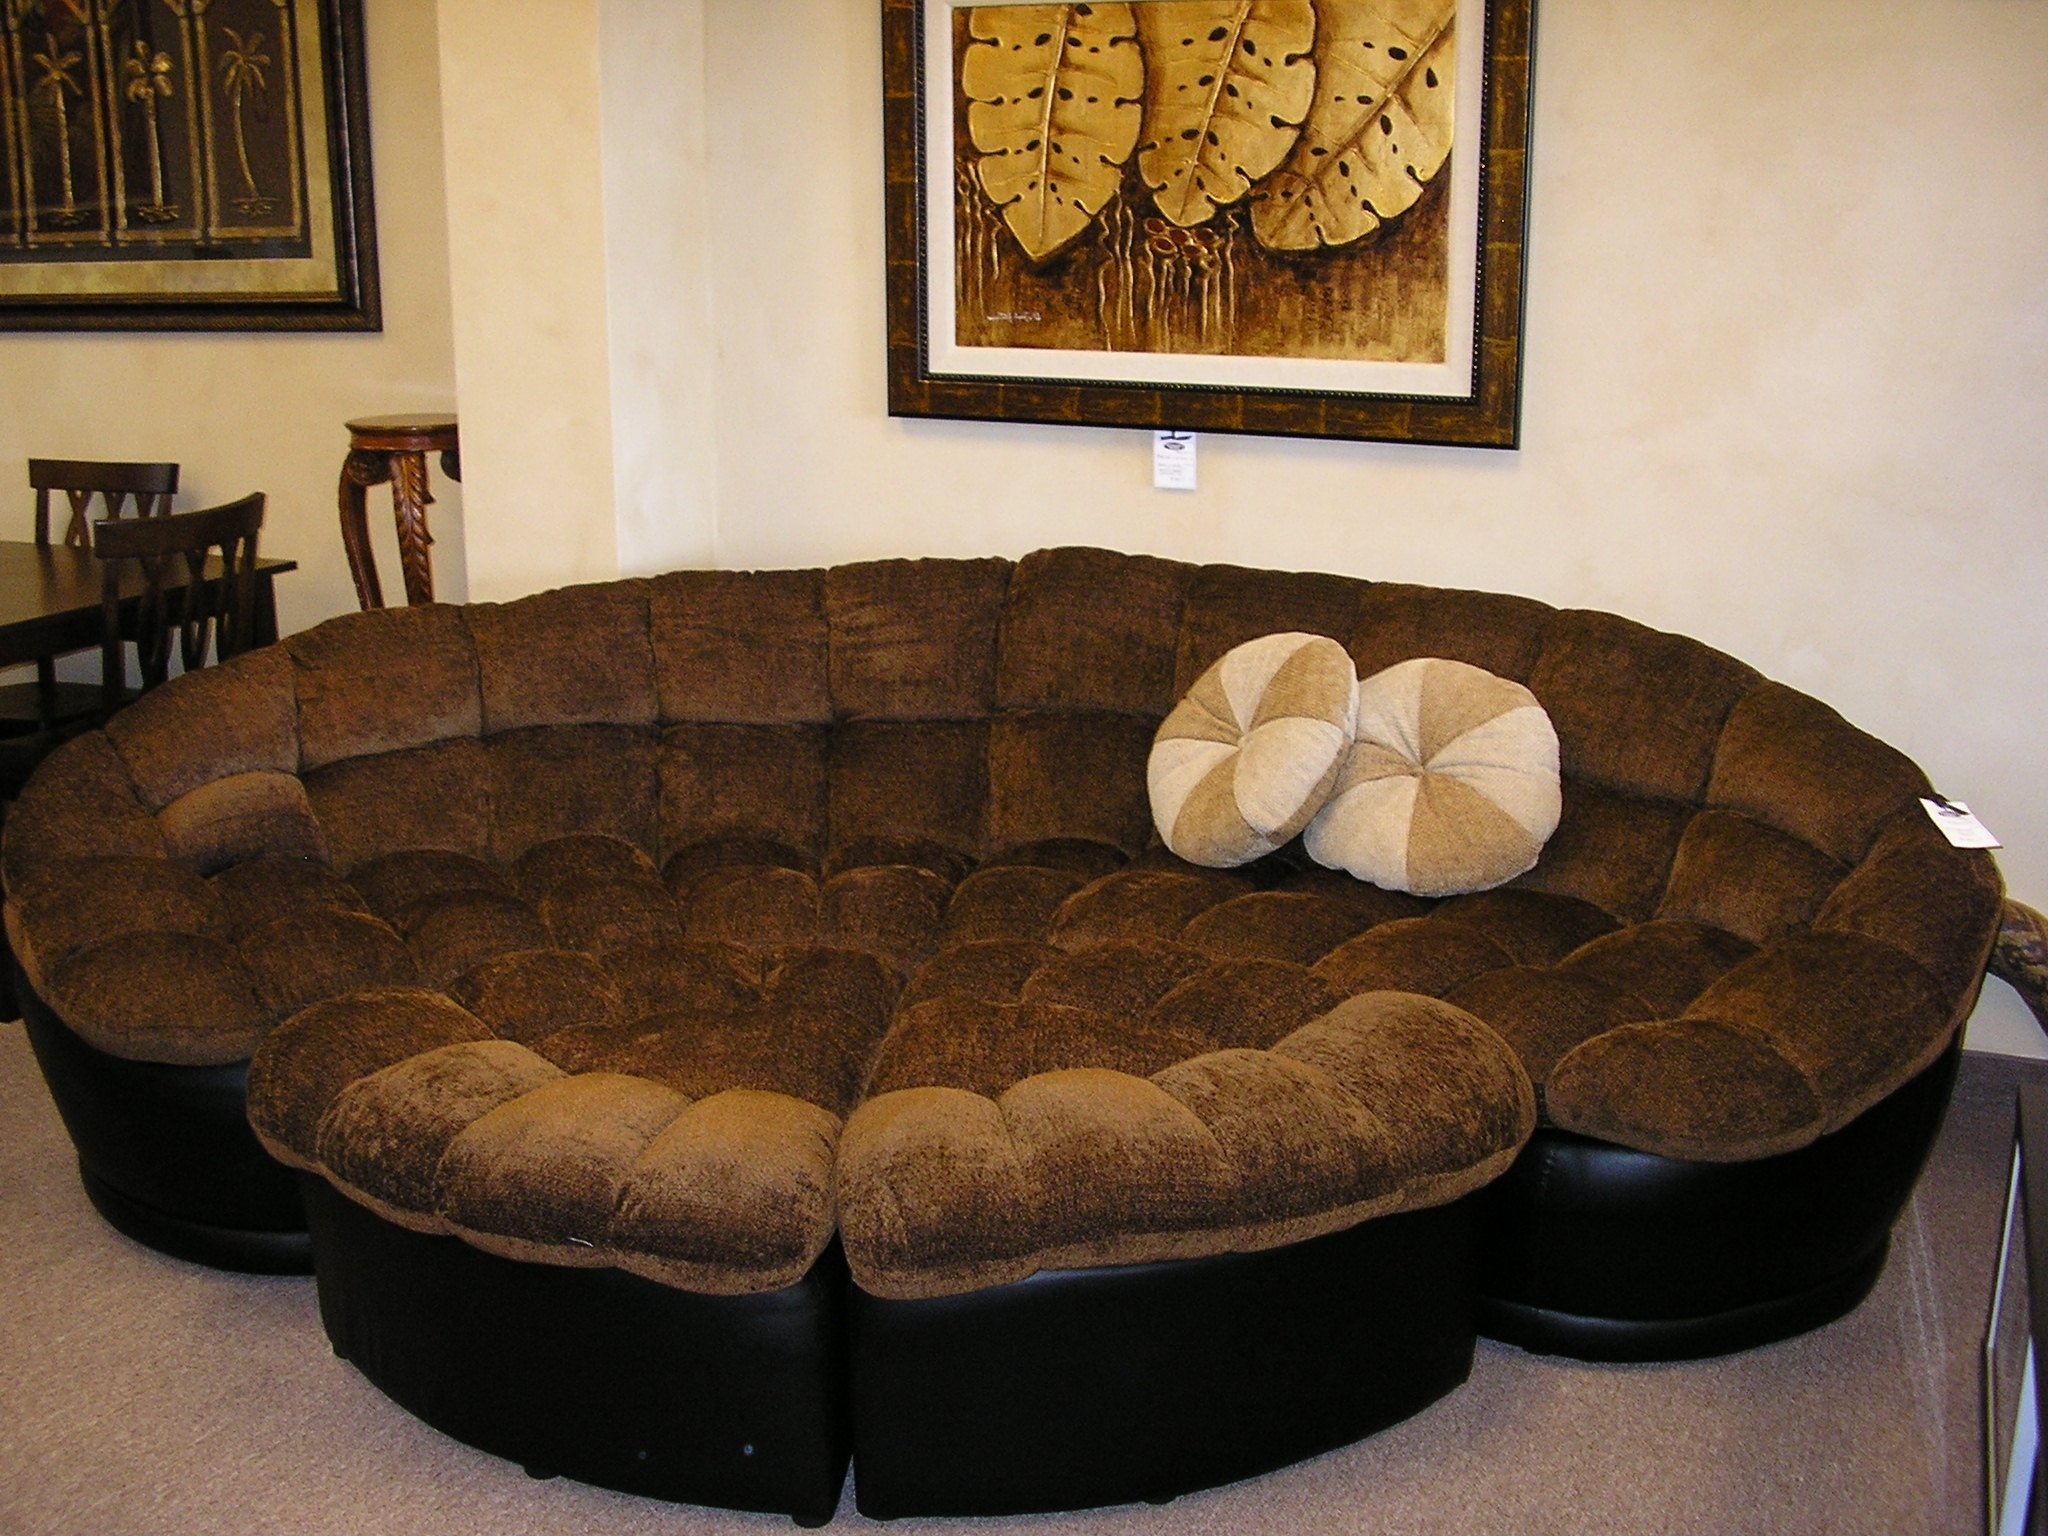 Most Popular Sectional Sofa Design: Beautiful Round Sectional Sofas Couches And Pertaining To Circular Sectional Sofas (View 16 of 20)